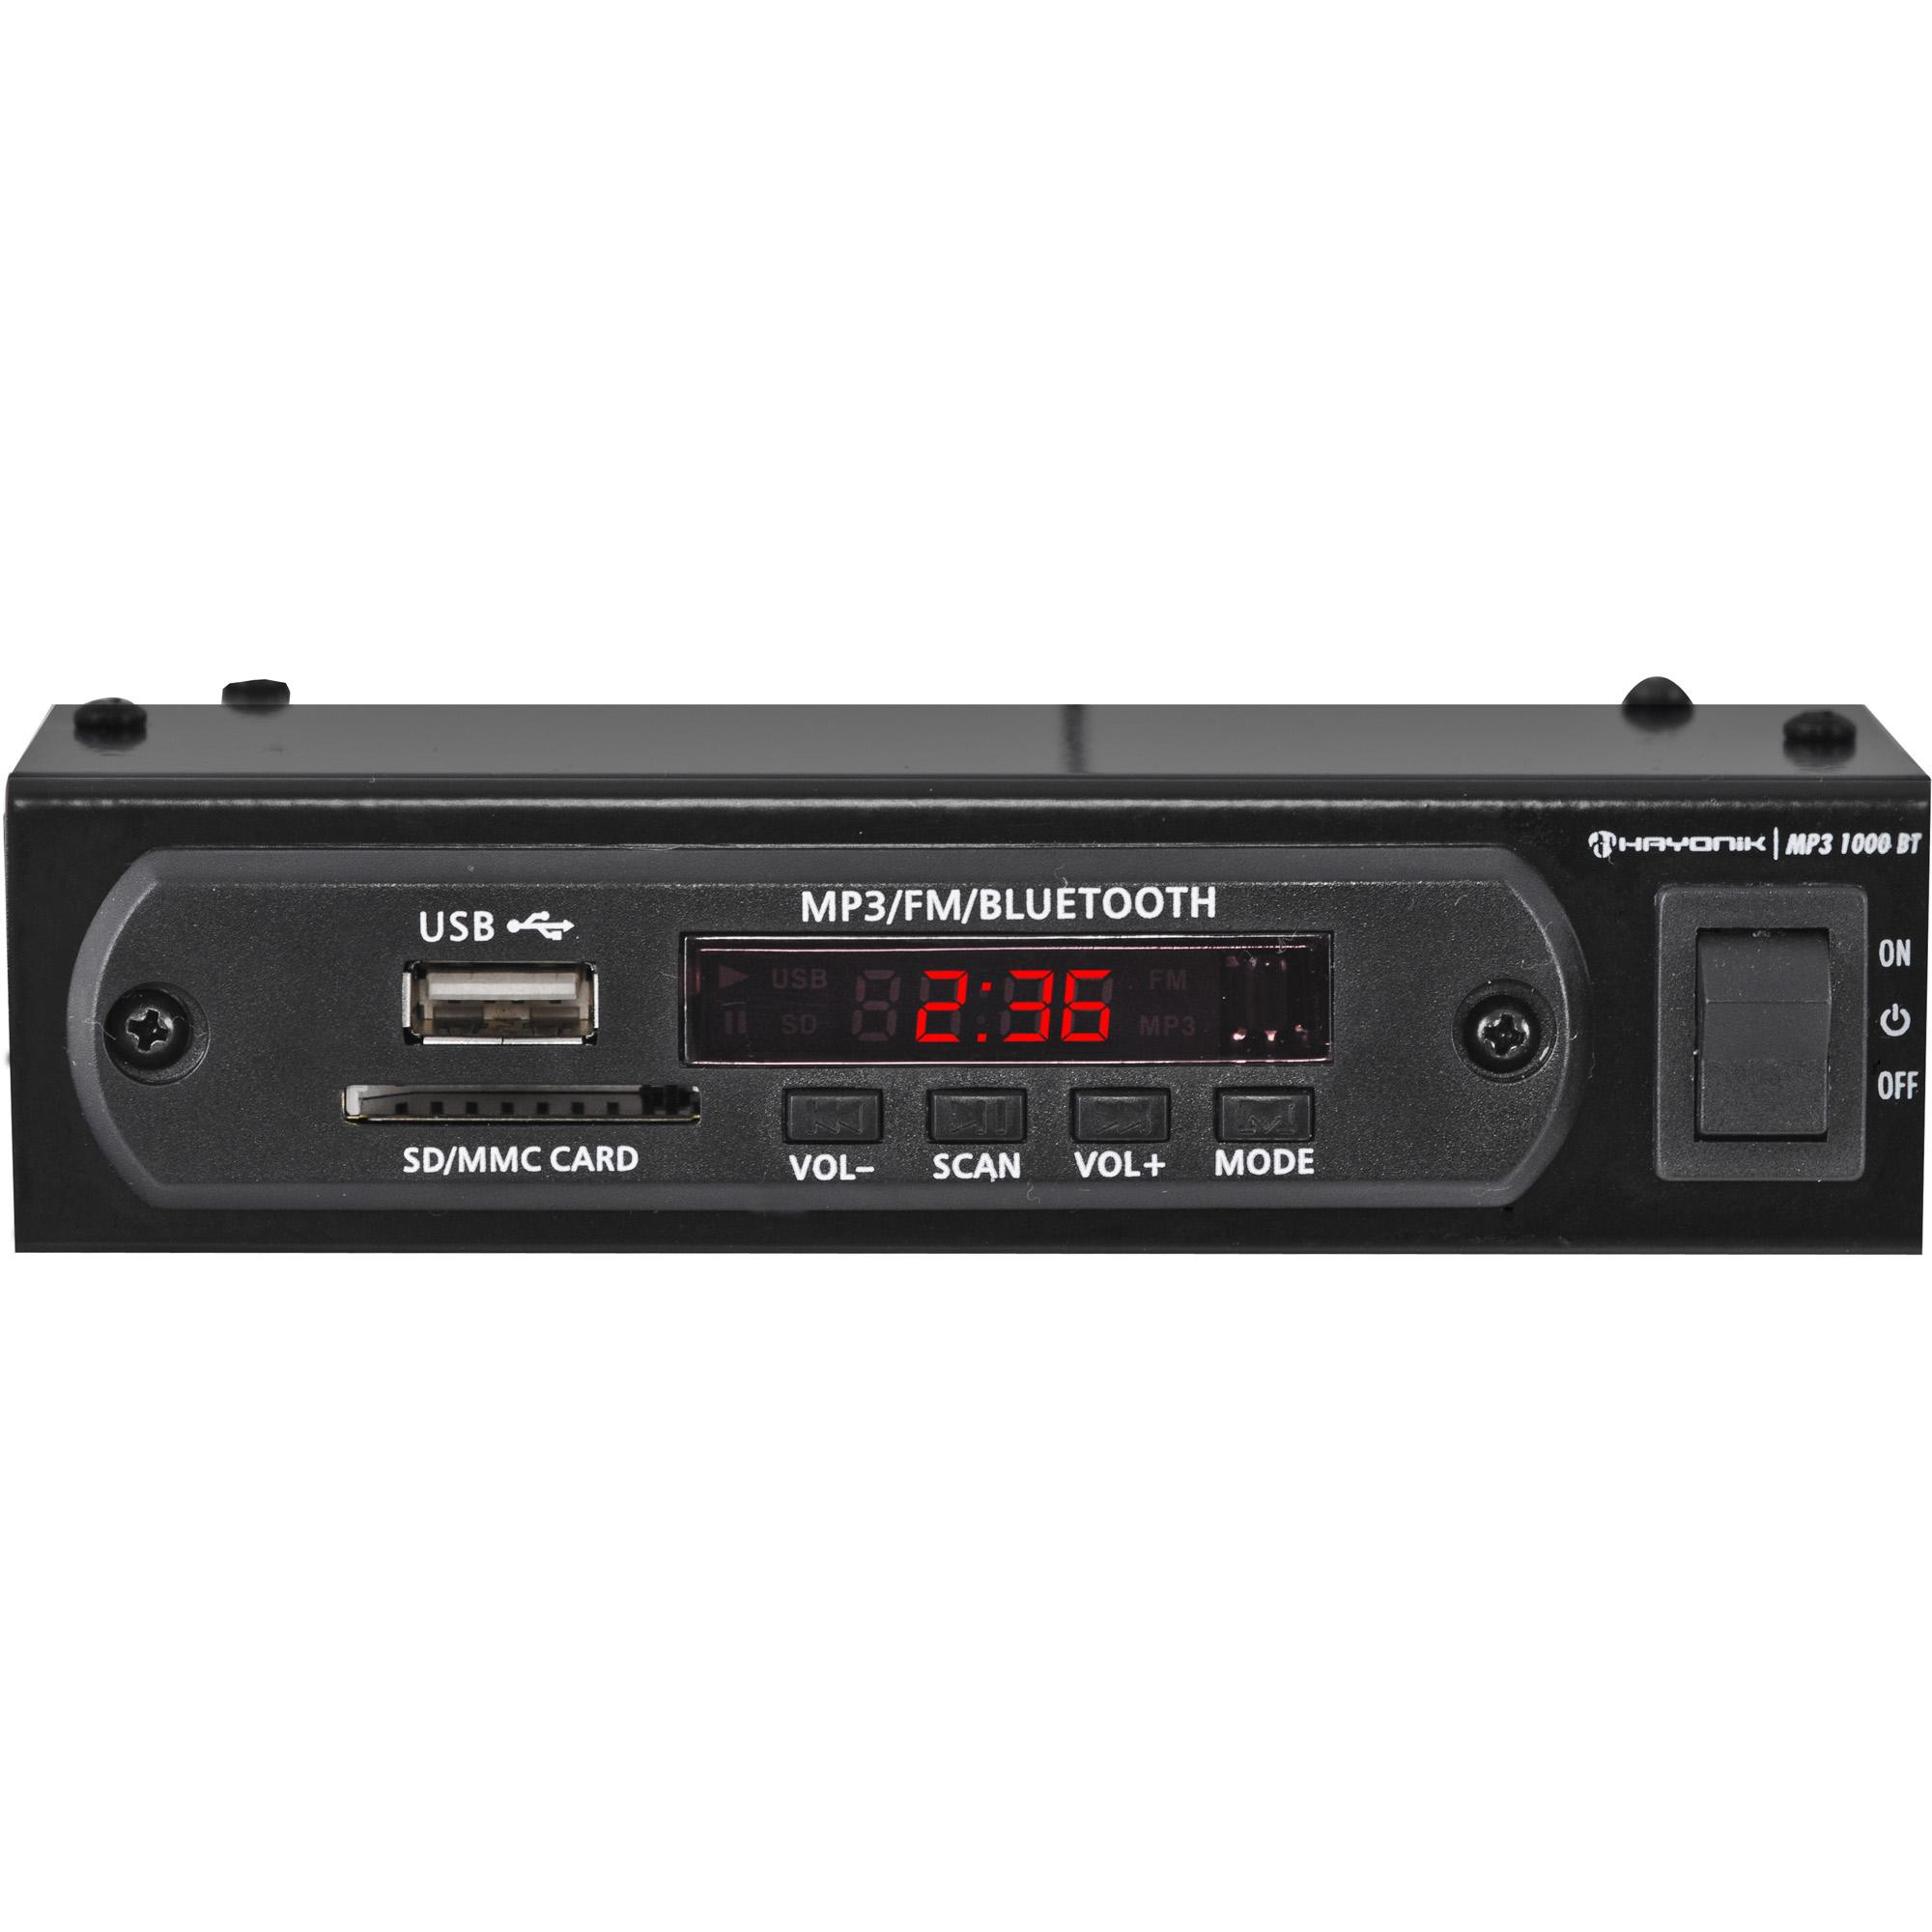 MODULO PRE USB-MP3/BLUETOOTH/FM